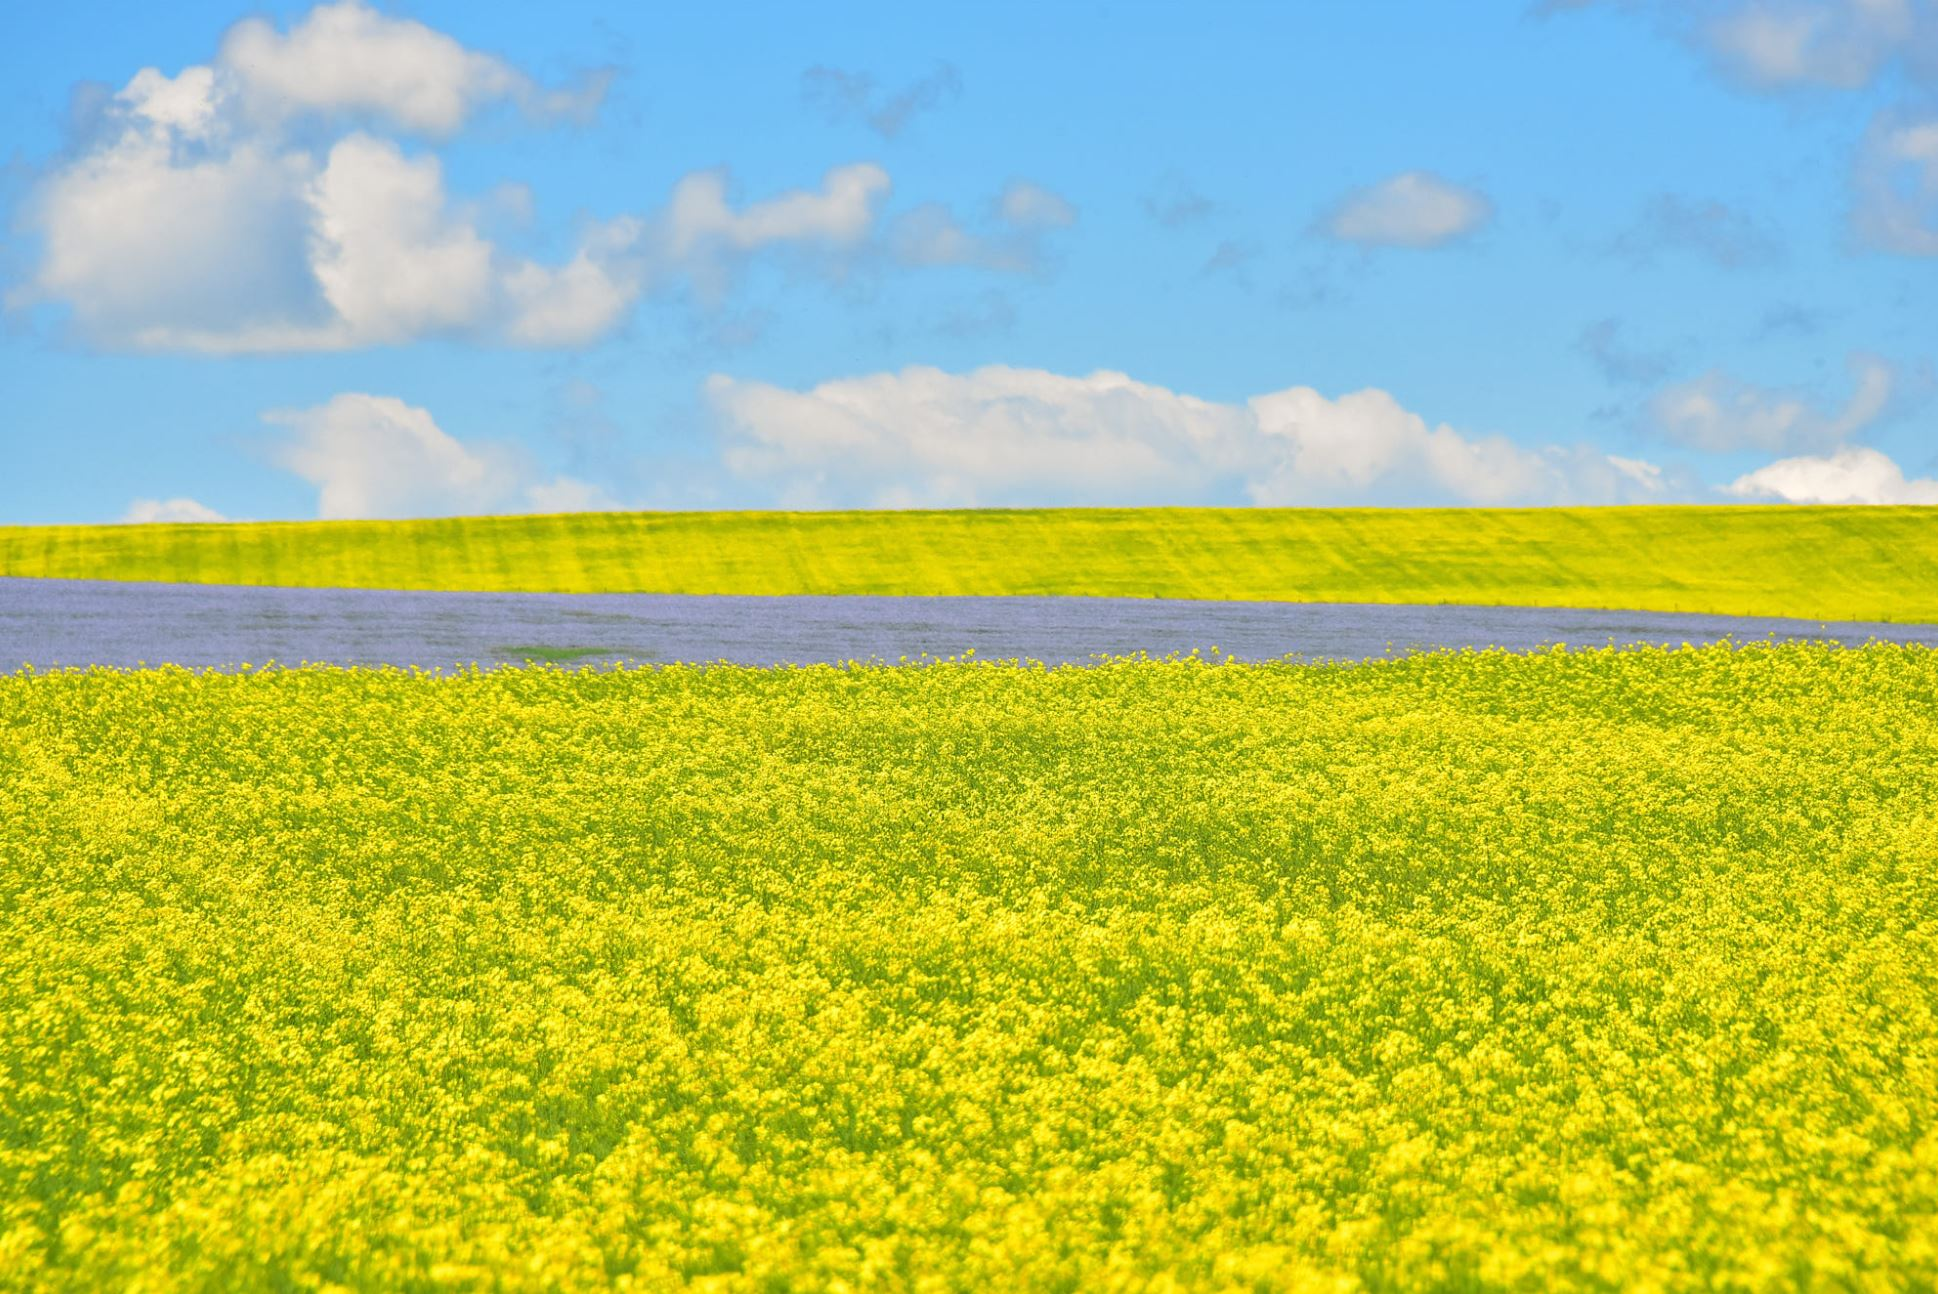 flax and canola fields